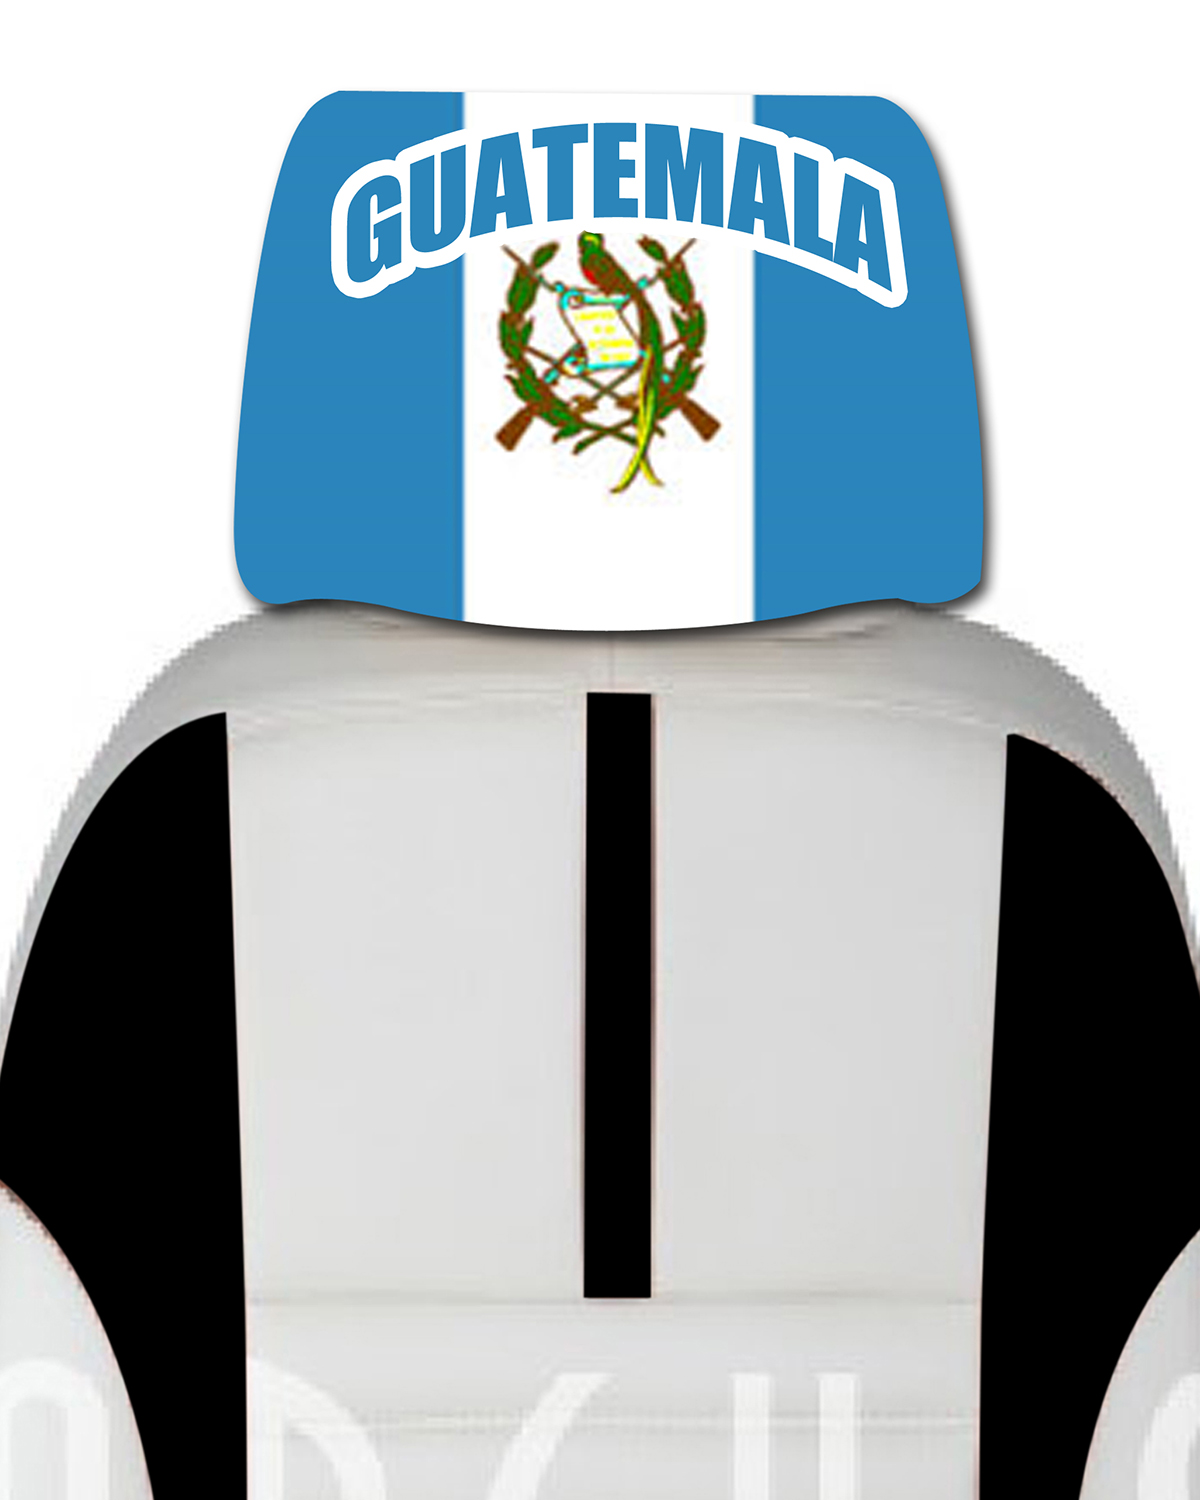 images/Guatemala car cover seat jflag.jpg